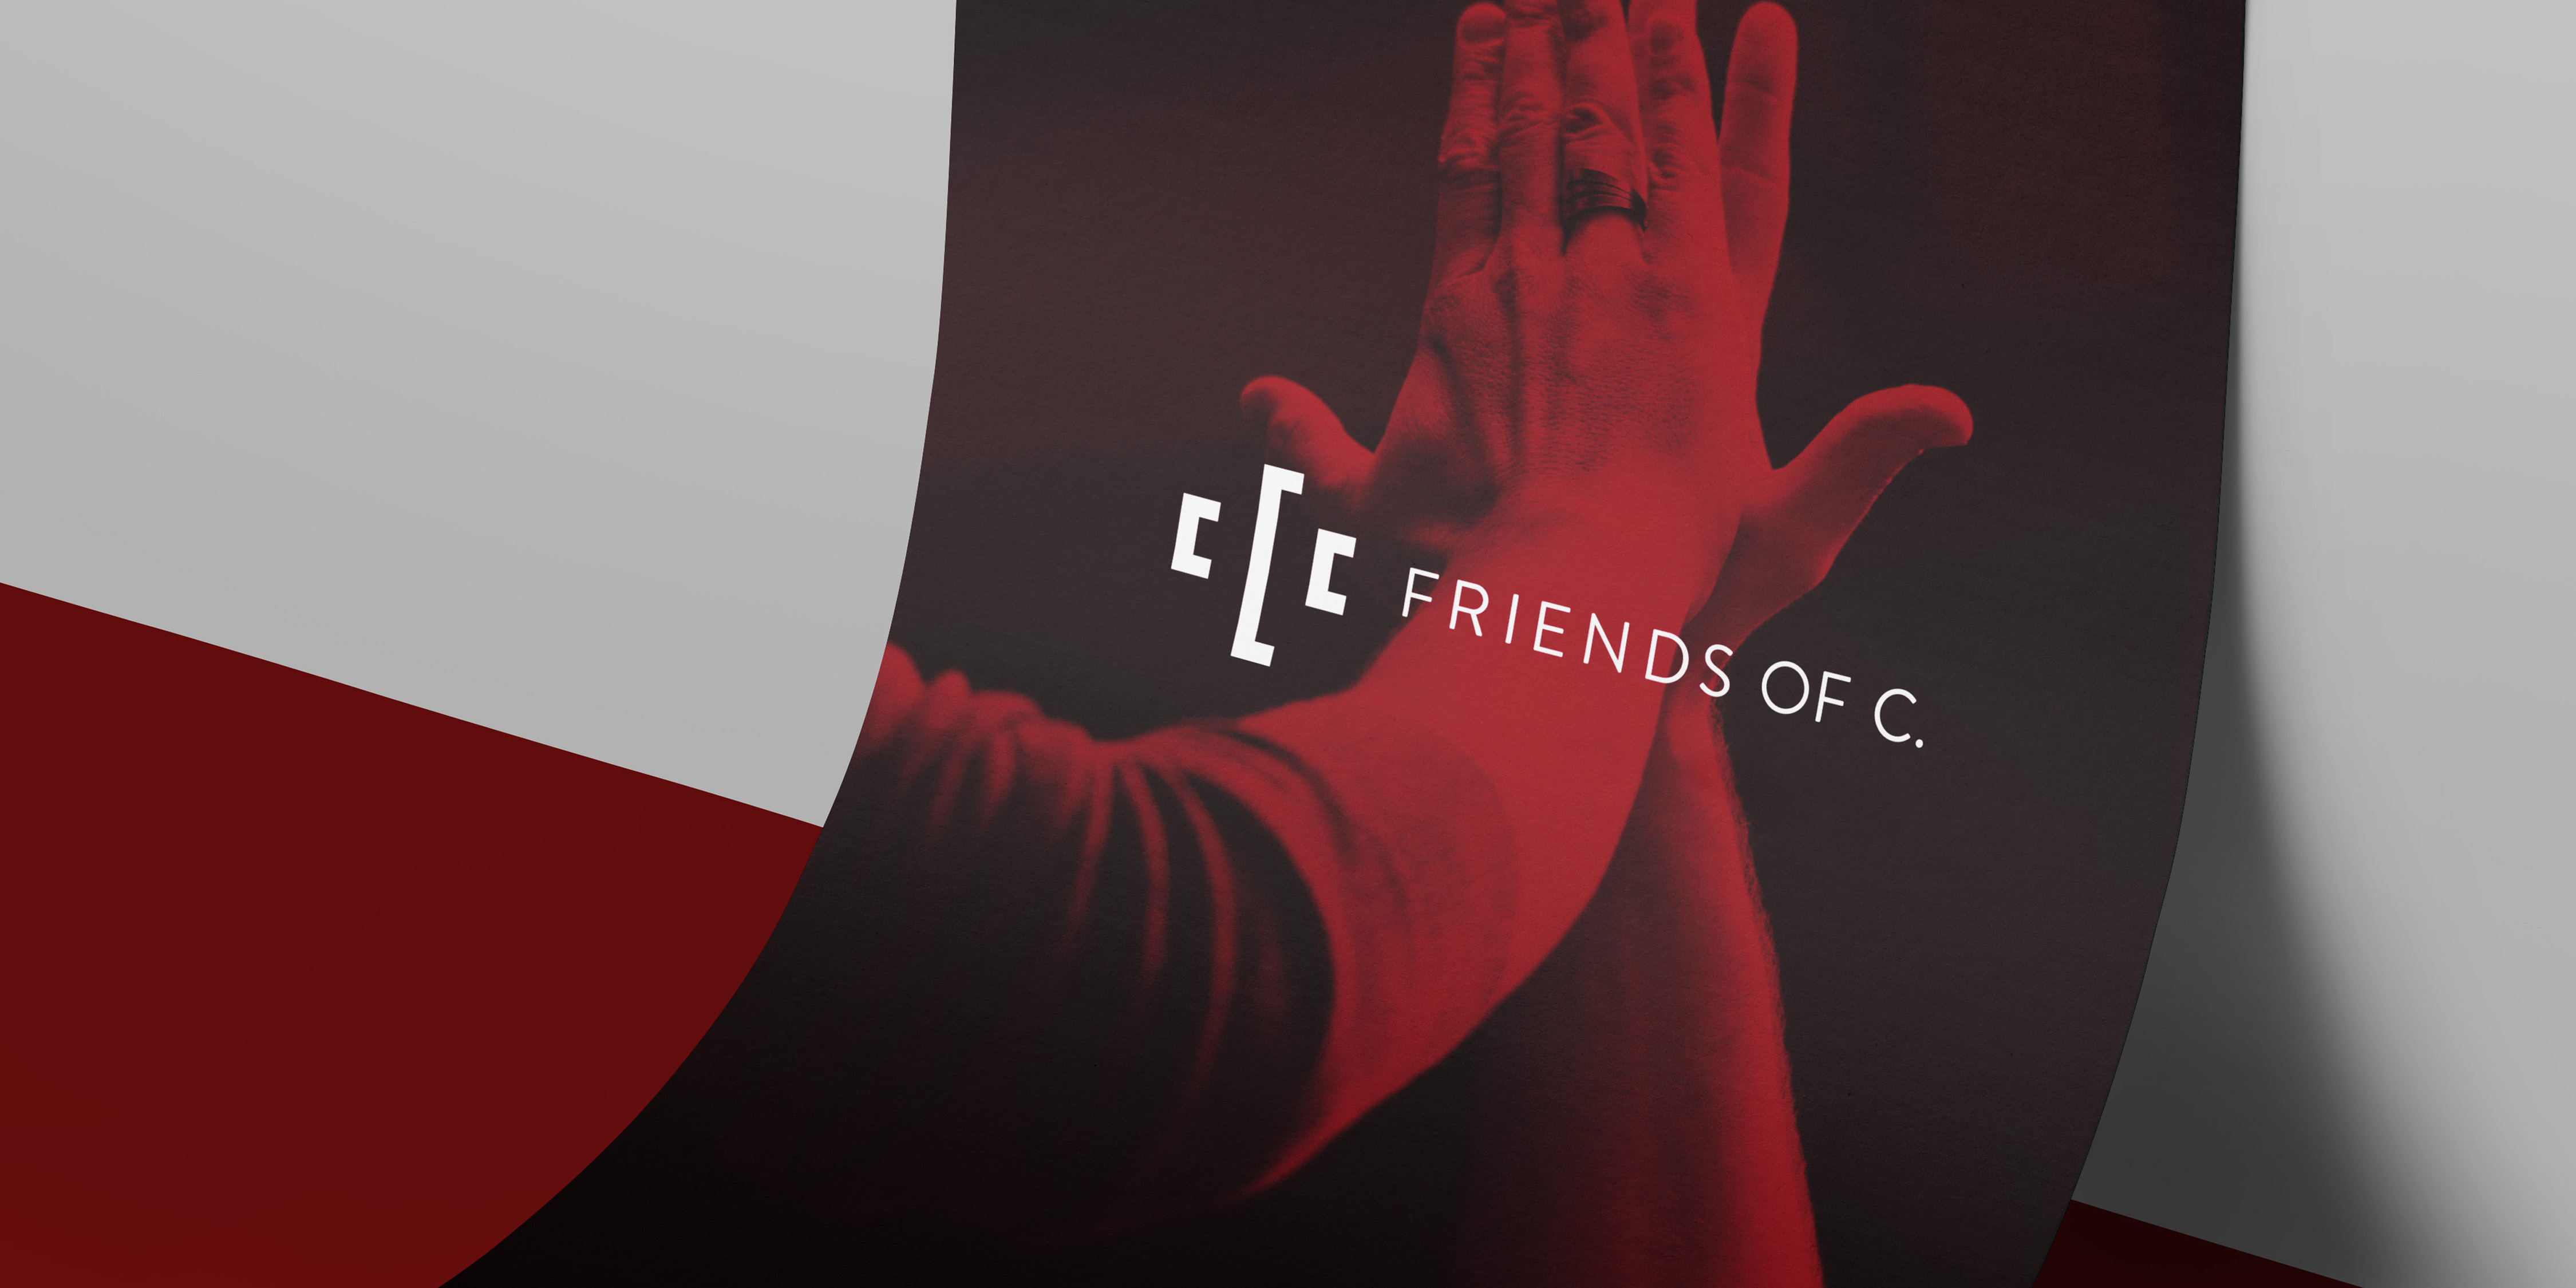 Das neue Key Visual dient als Titelmotiv für den Friends of C. Salesfolder.